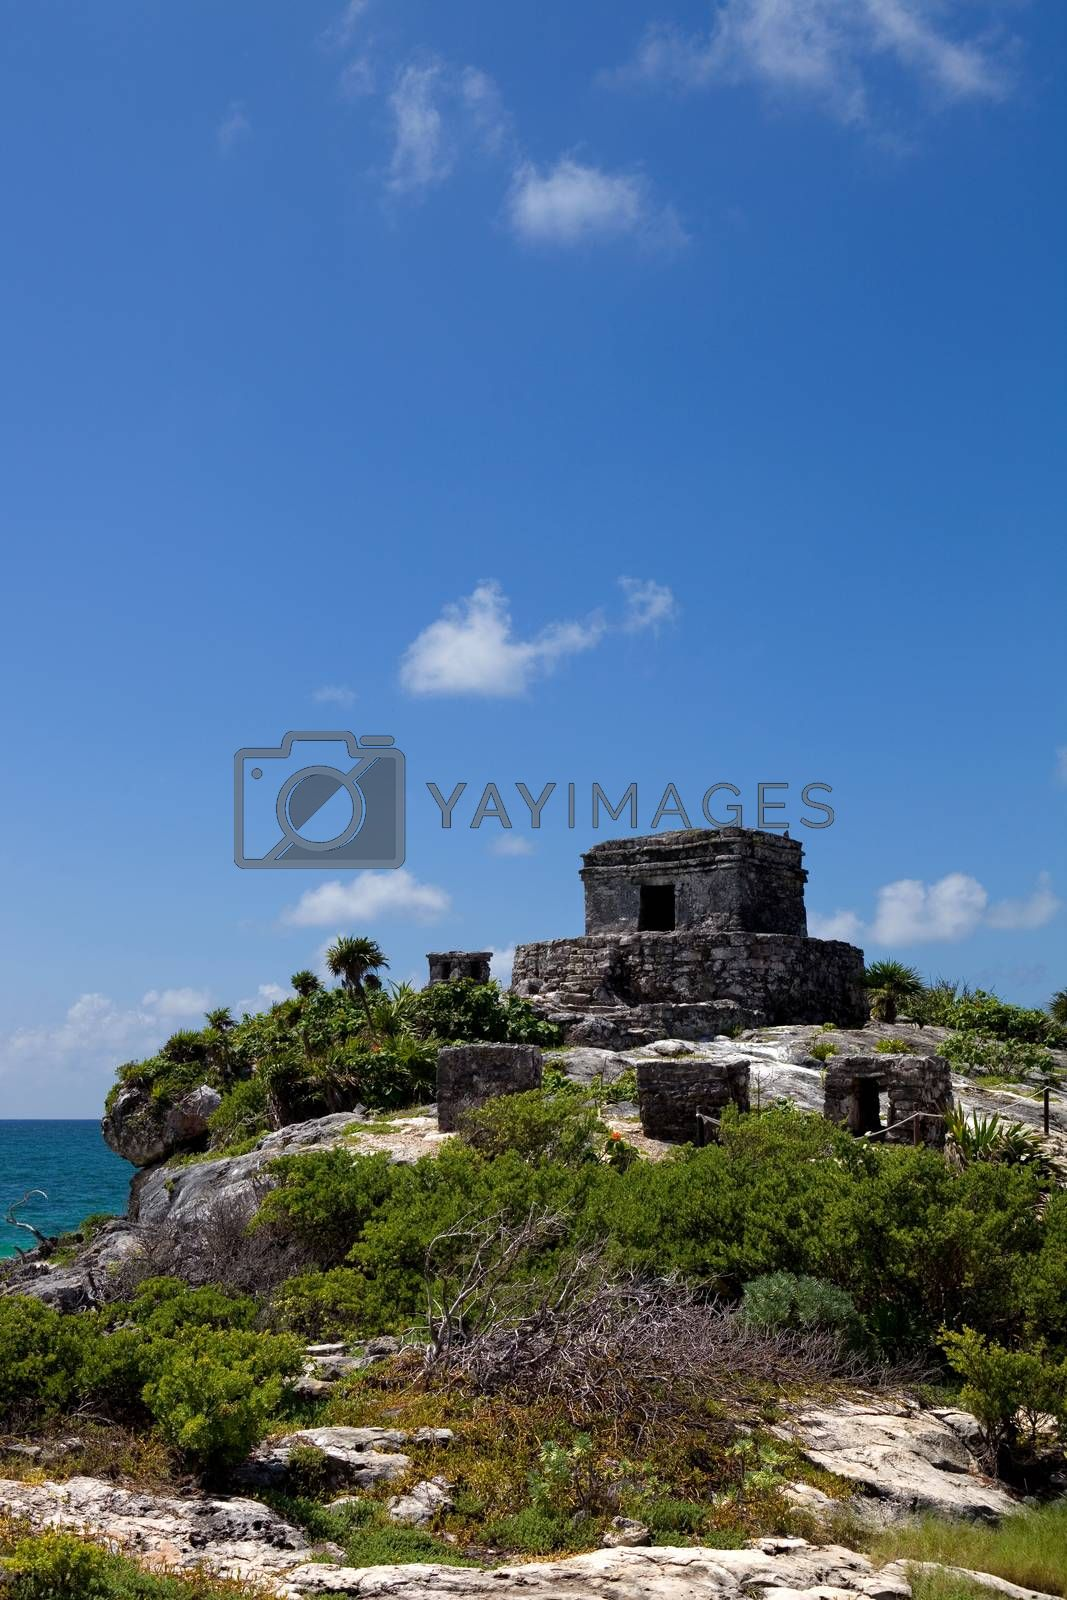 Royalty free image of Tulum by zittto